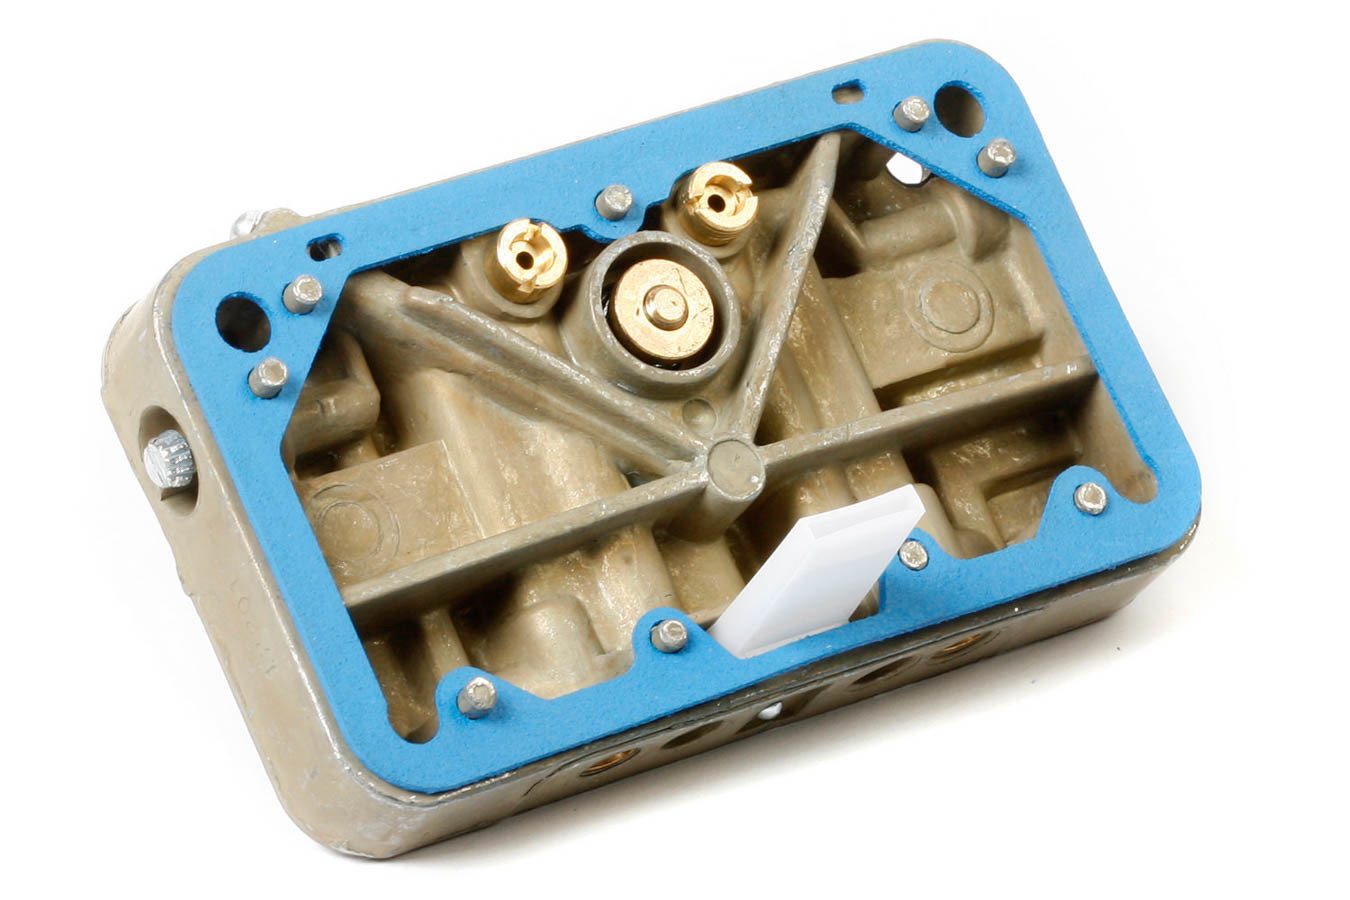 Holley 134-280 Metering Block, Gaskets Included, Aluminum, Chromate, Primary, Holley HP 2-Barrel Carburetors, Kit